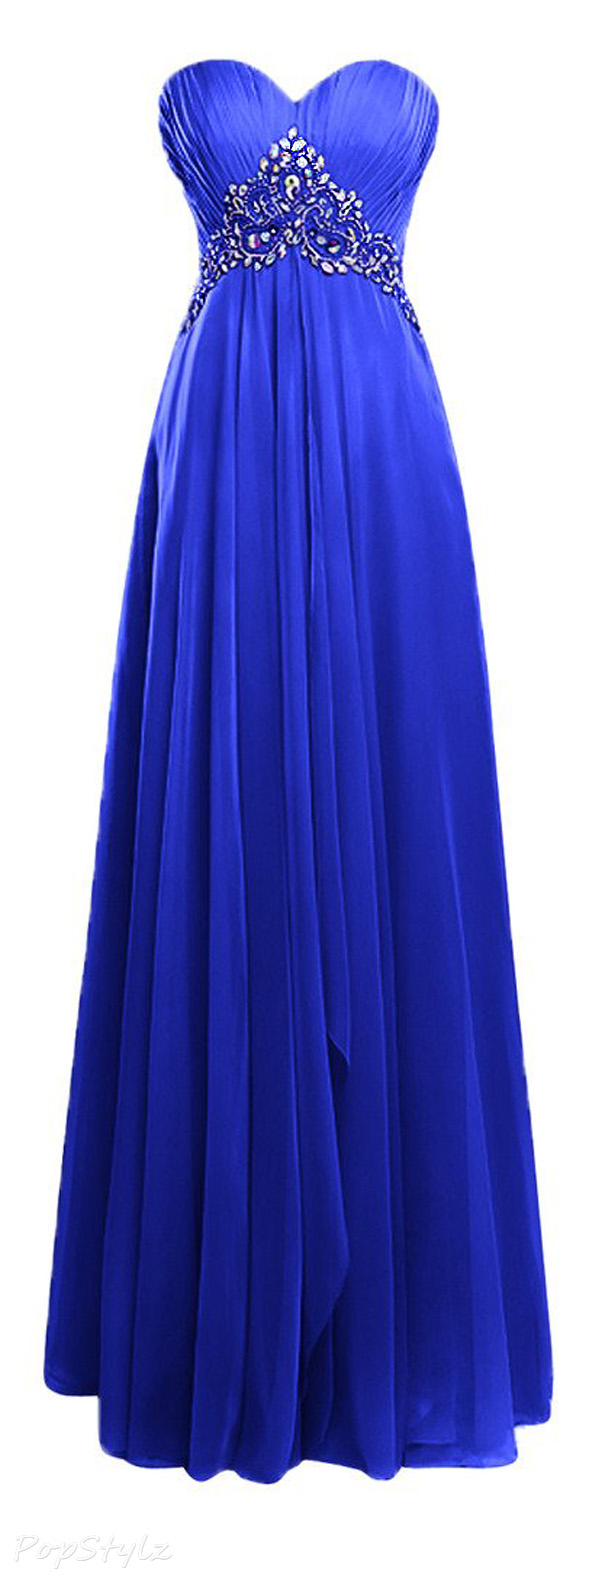 Topdress Sweetheart Beaded Ruffled Evening Gown